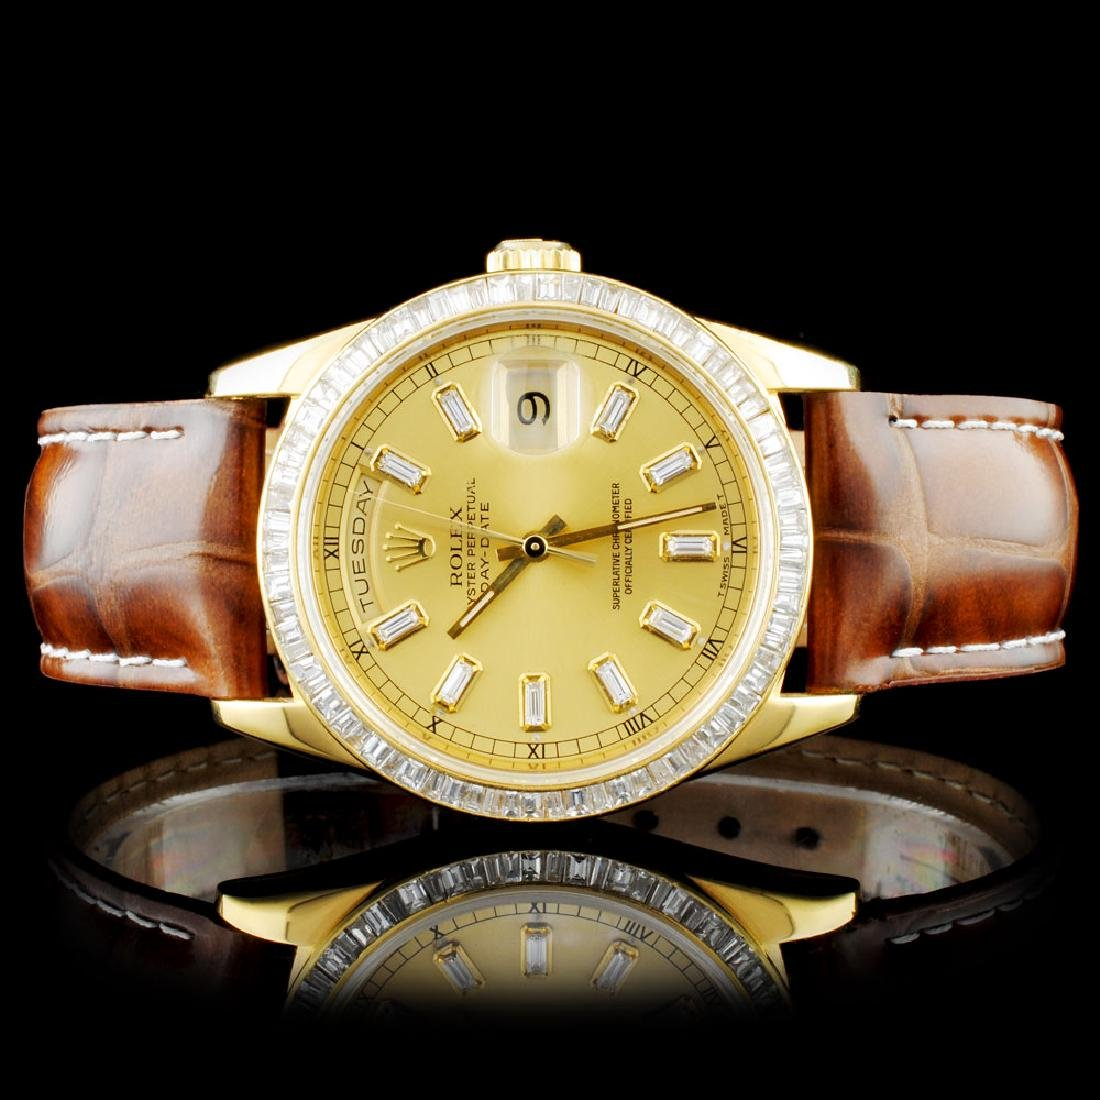 Rolex 18K YG Day-Date Baguette Diamond Watch